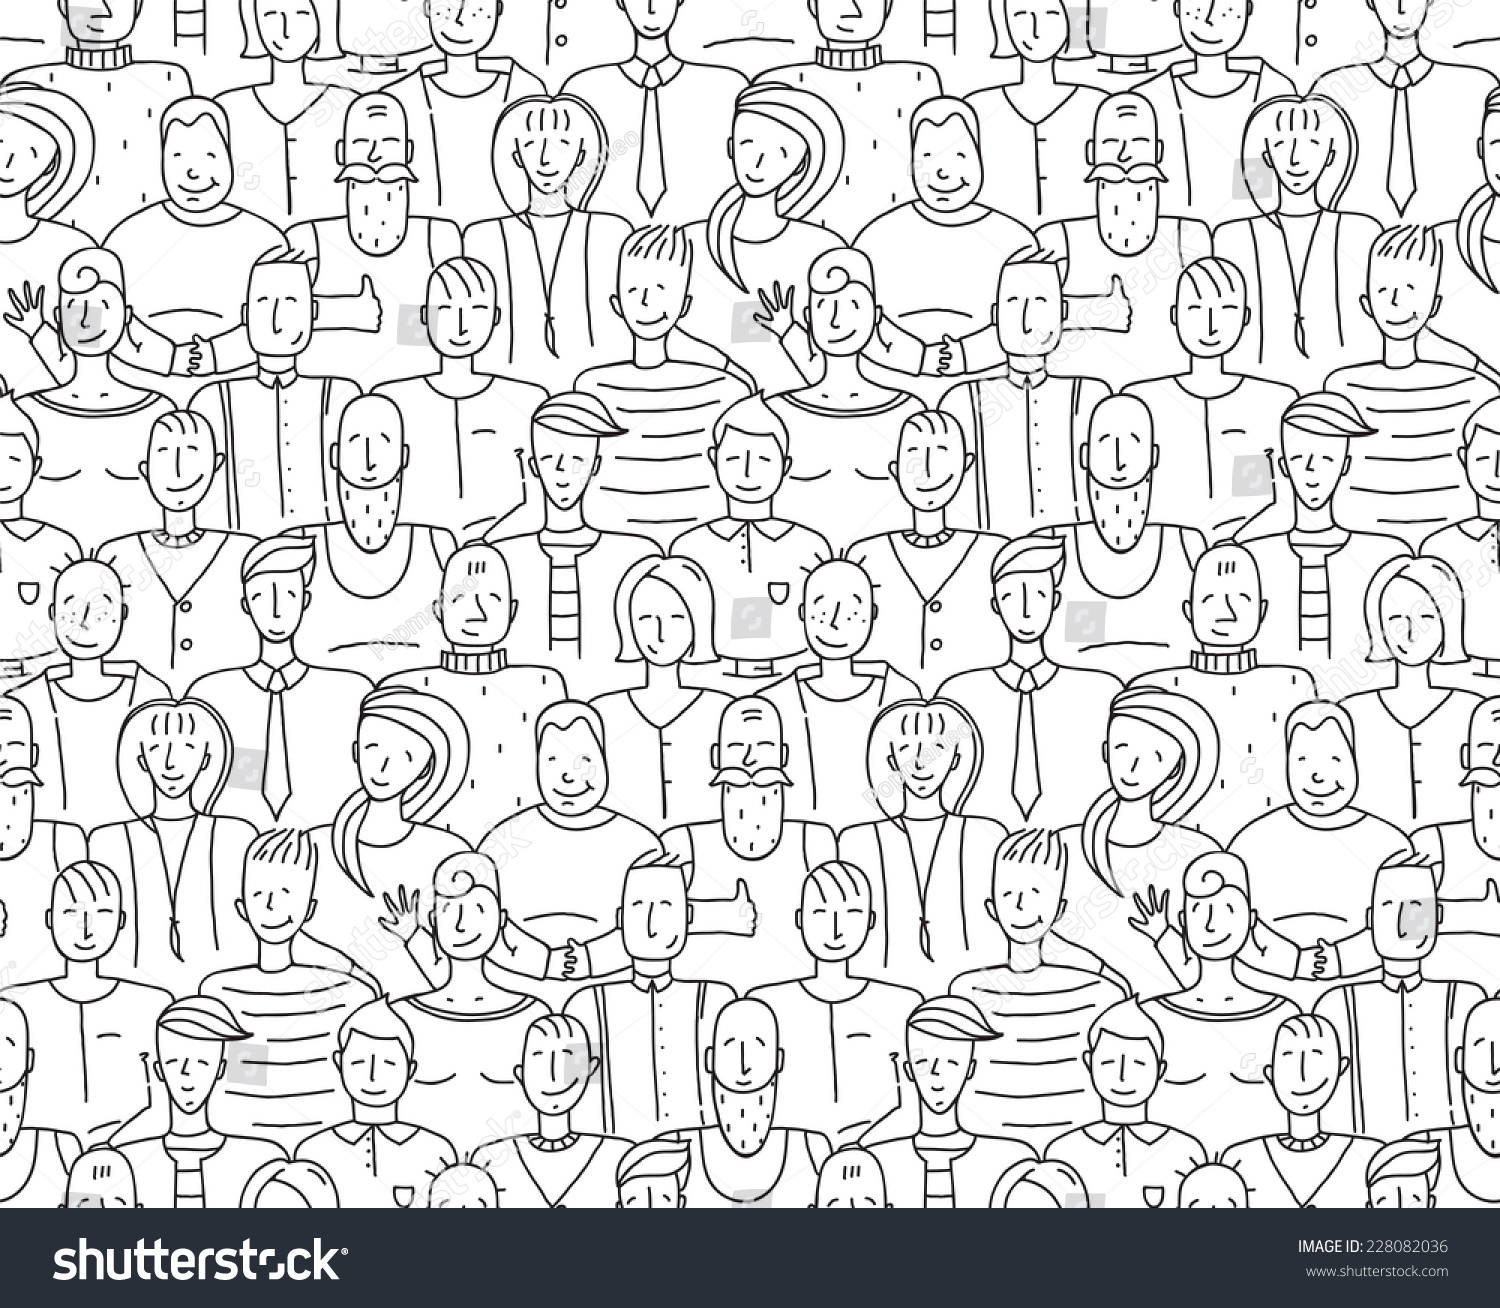 Uncategorized People Drawing royalty free black and white people throng 228082036 seamless background monochrome outline drawing vector illustration eps8